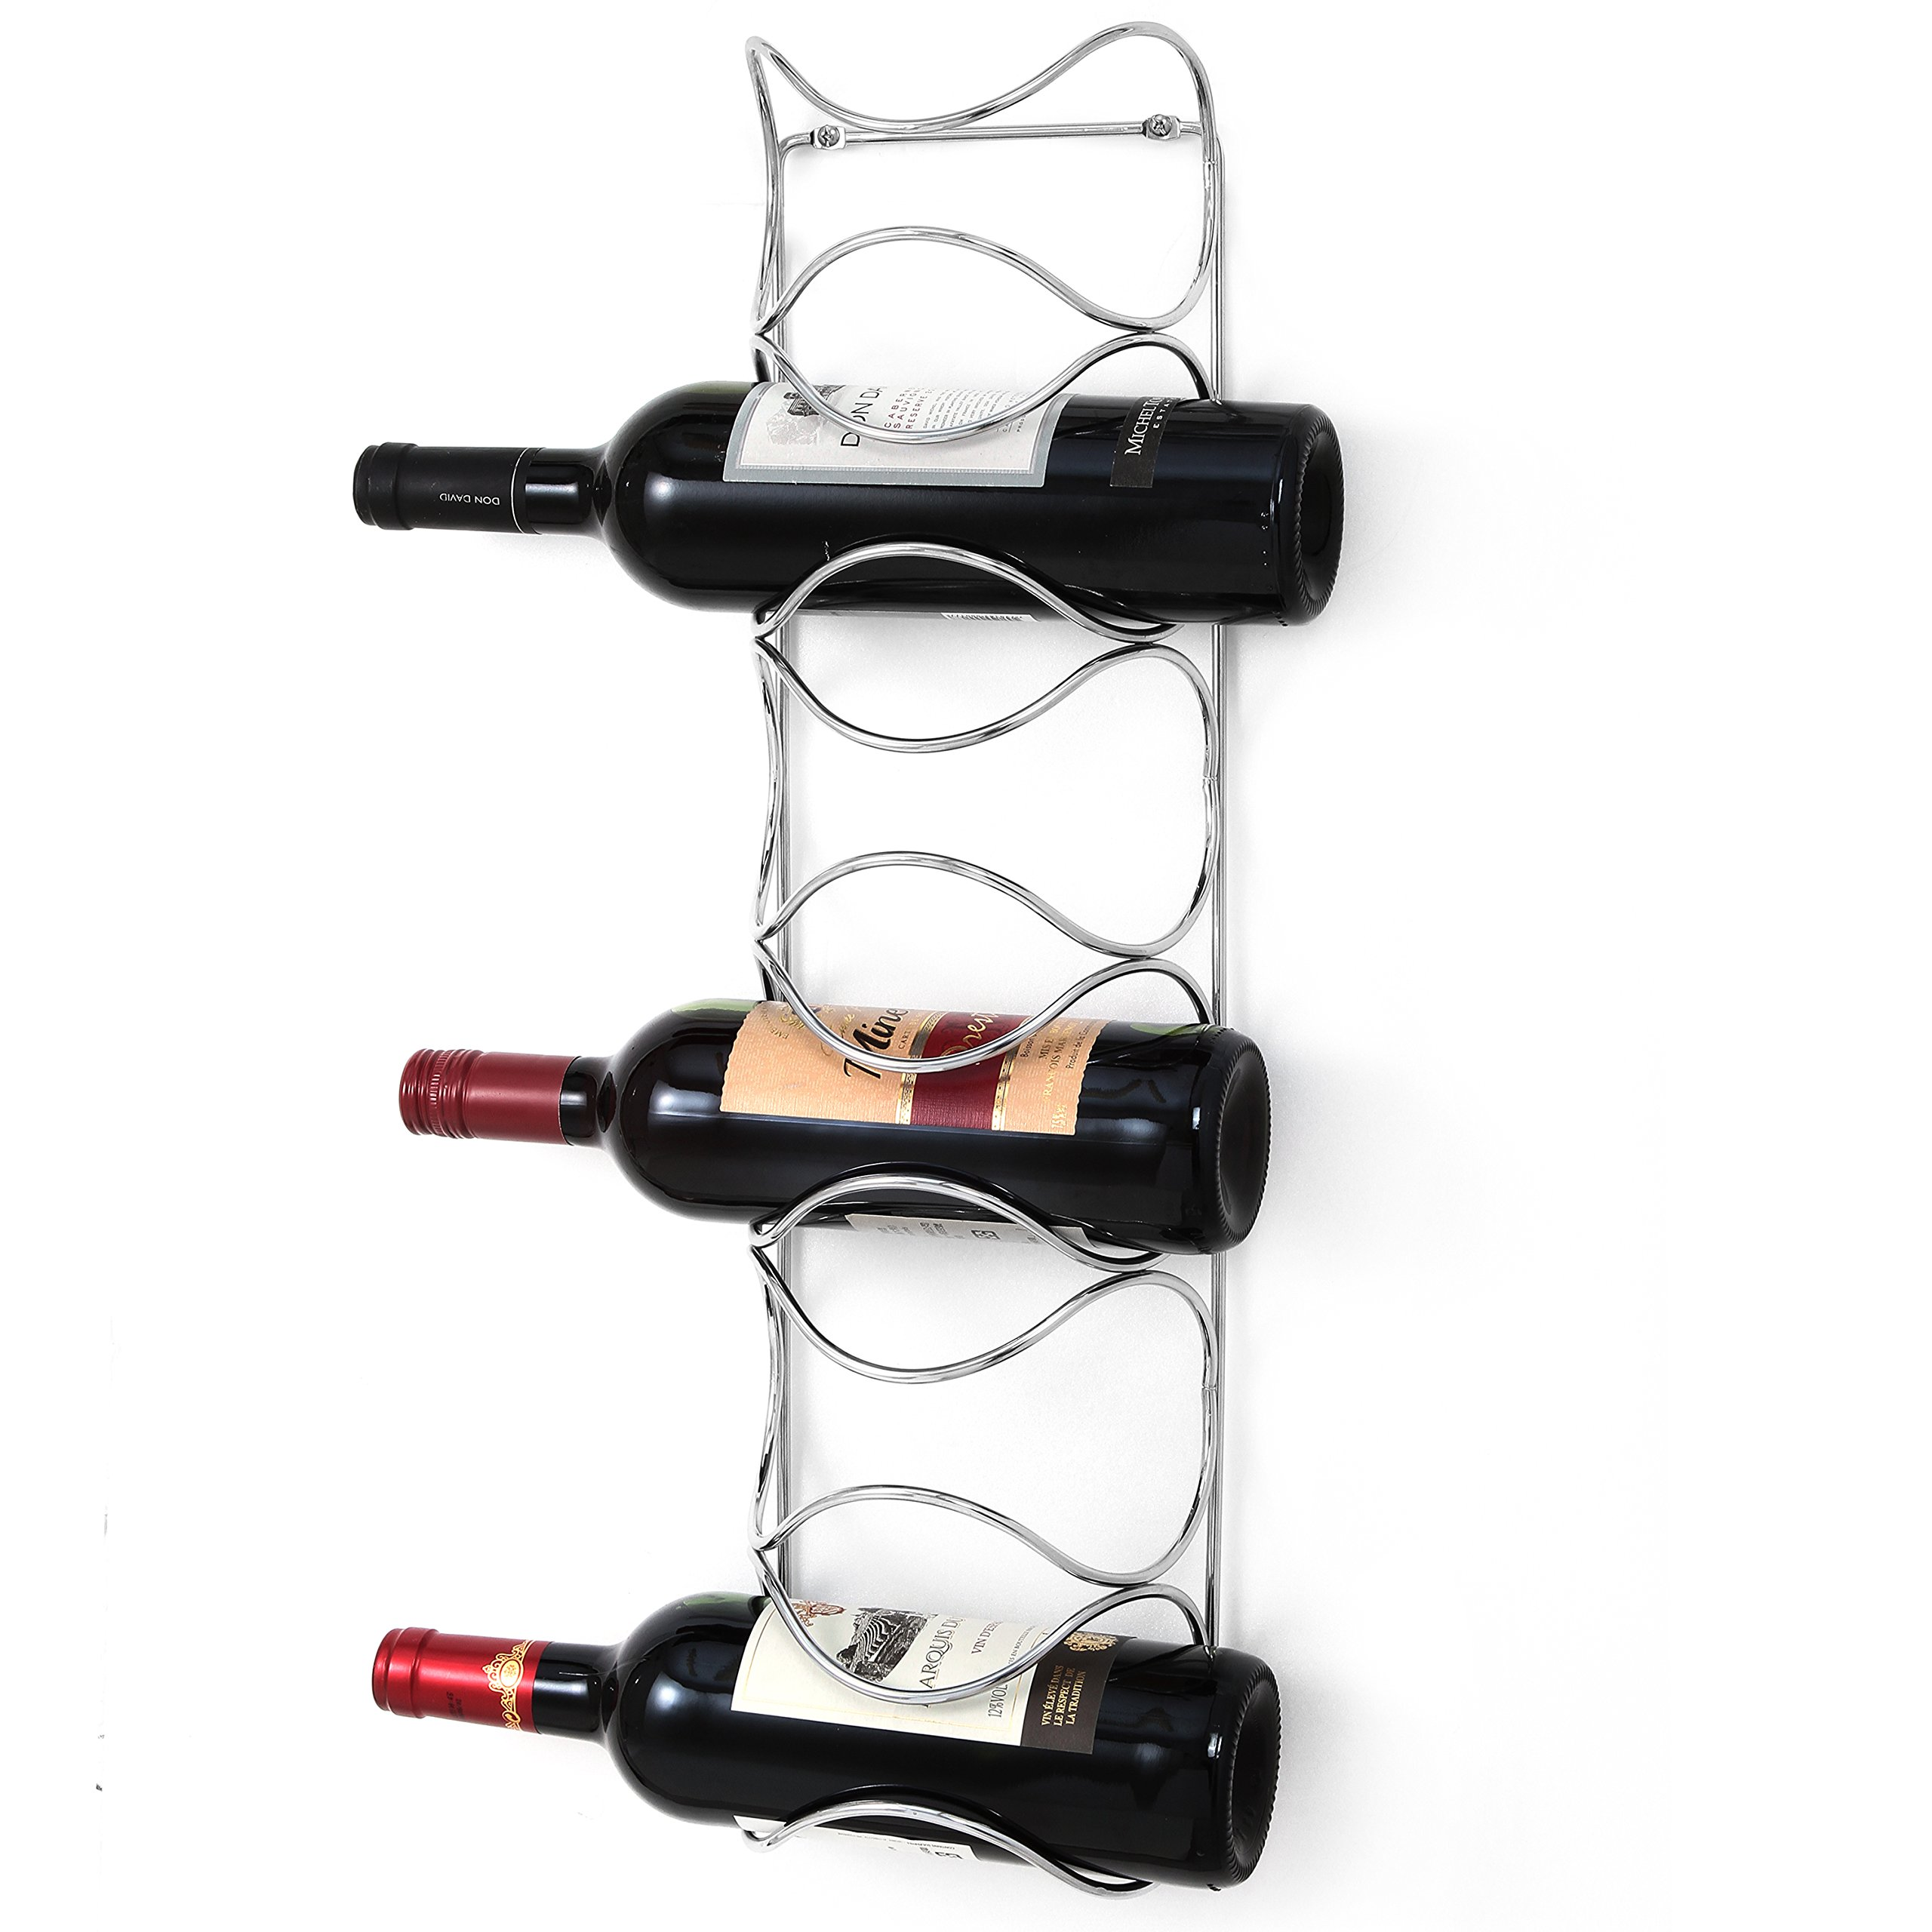 Modern Chrome-Plated Steel Wire Wall Mounted 6-Bottle Wine Rack, Silver